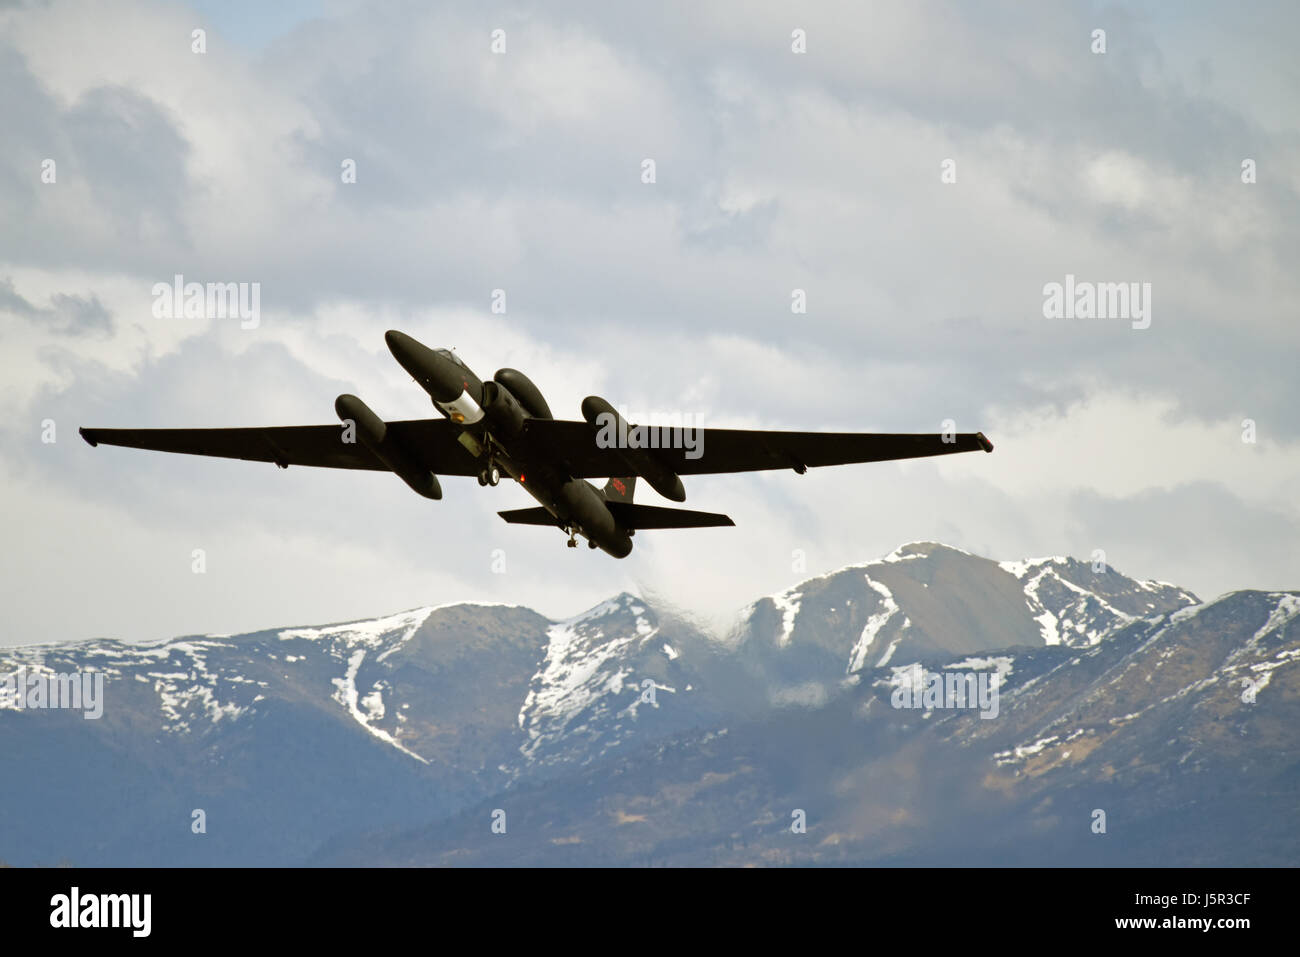 A U.S. Air Force U-2S Dragon Lady spy plane takes off during exercise Northern Edge at the Joint Base Elmendorf - Stock Image